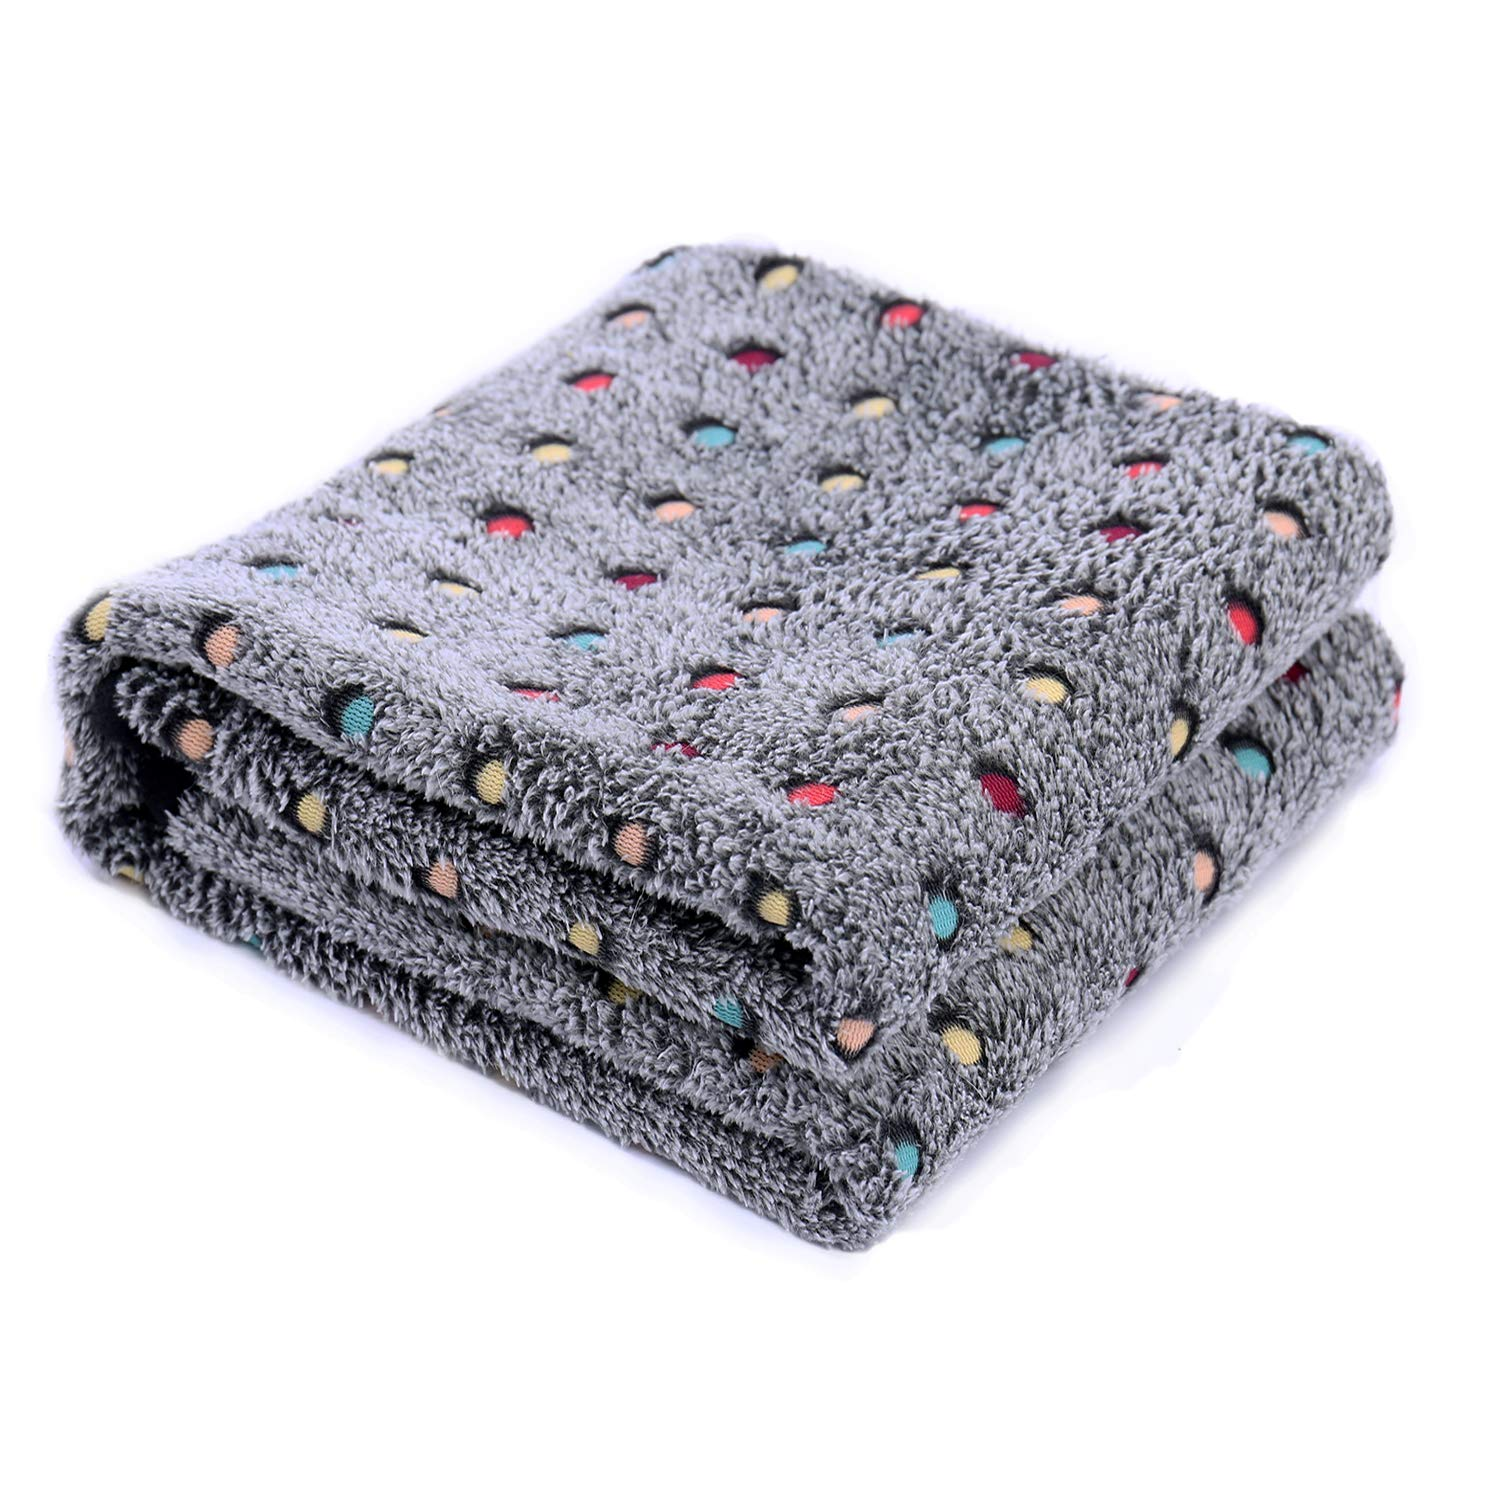 Stylish plush blanket for your dog •Everything cozy gifts